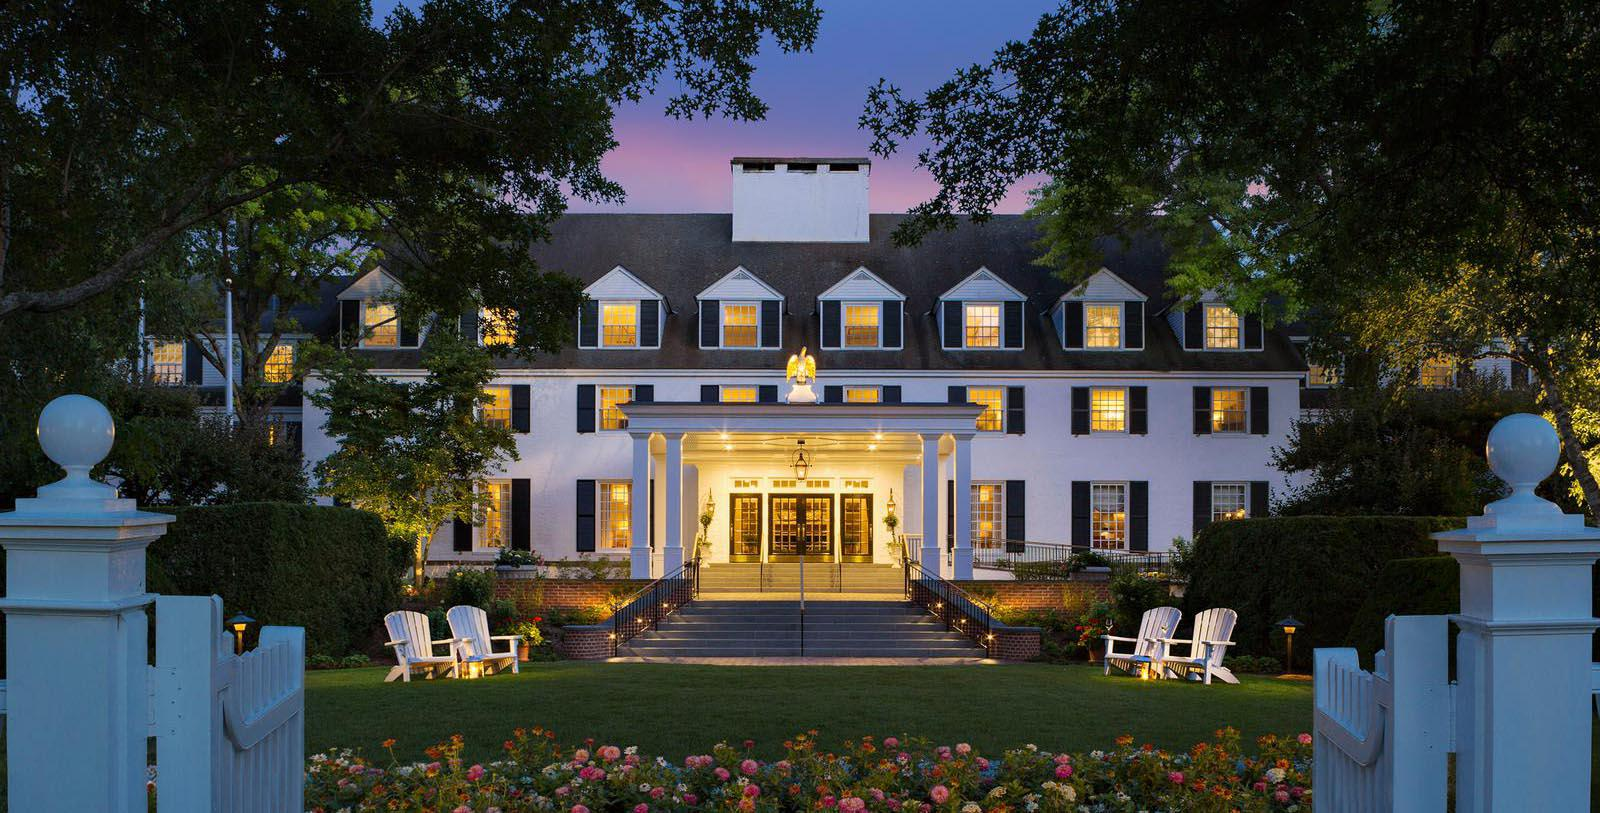 Woodstock Inn & Resort